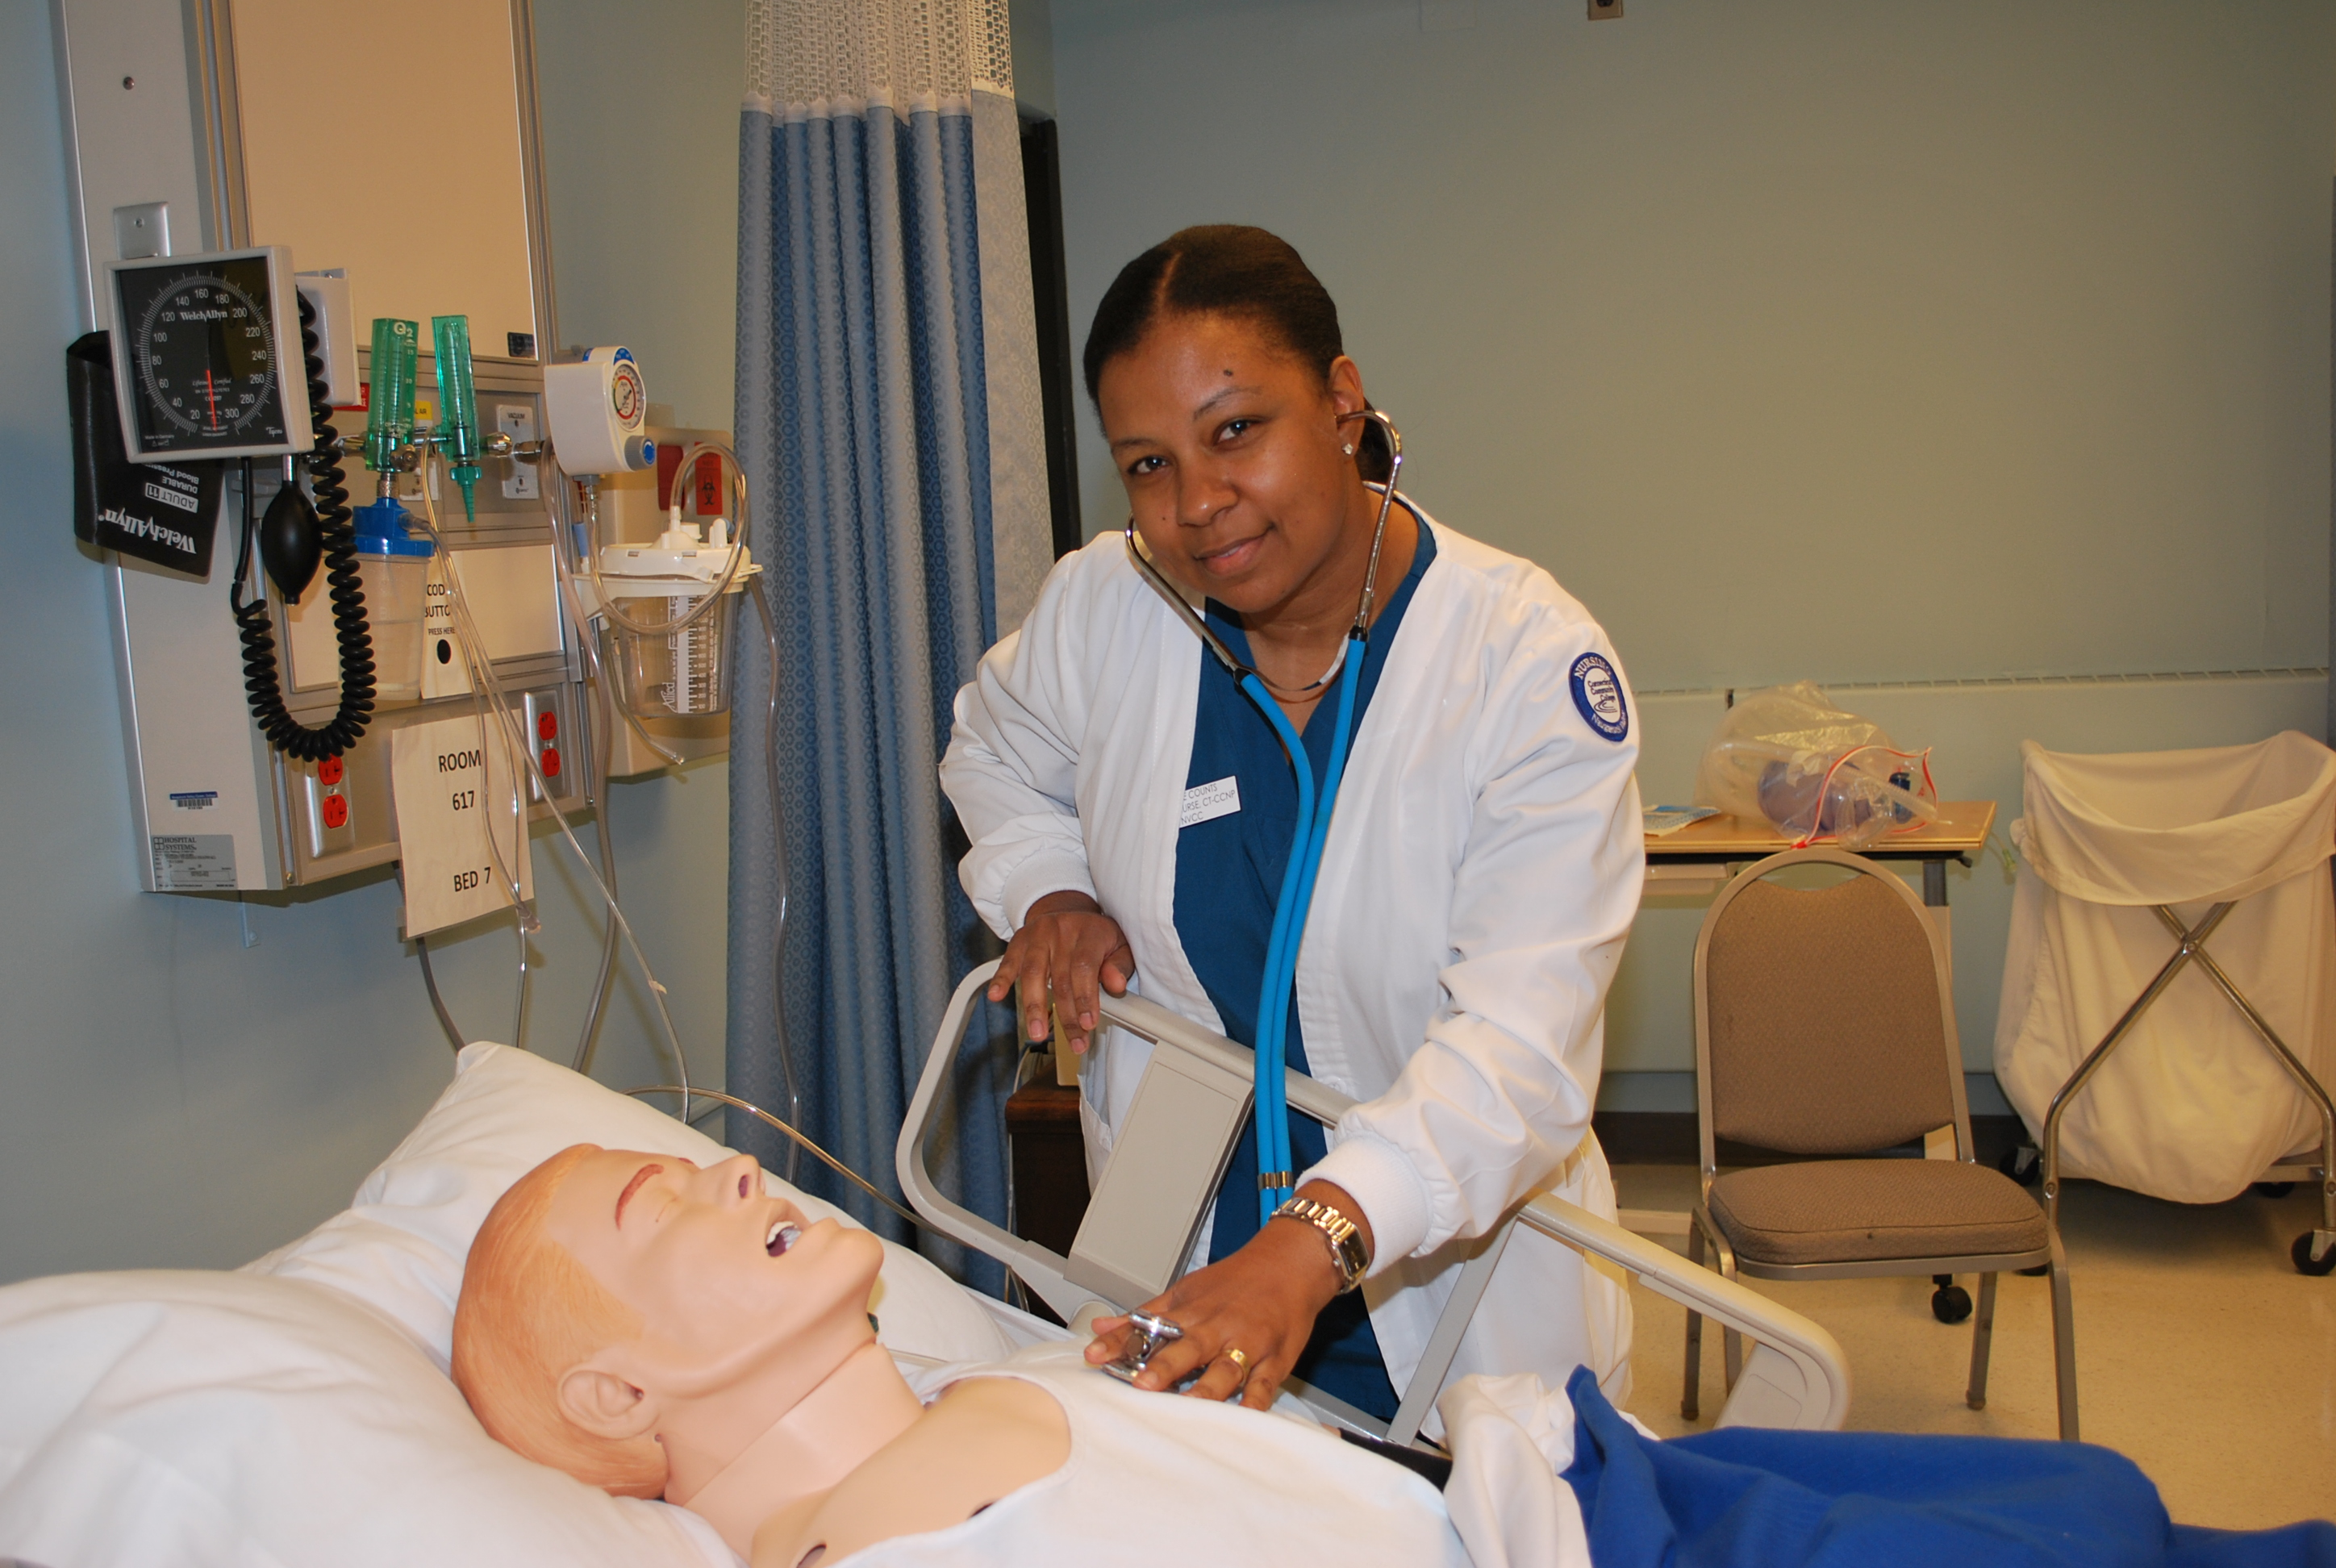 NVCC Nursing student simulating care using a stethoscope on a mannequin laying in a hospital bed.